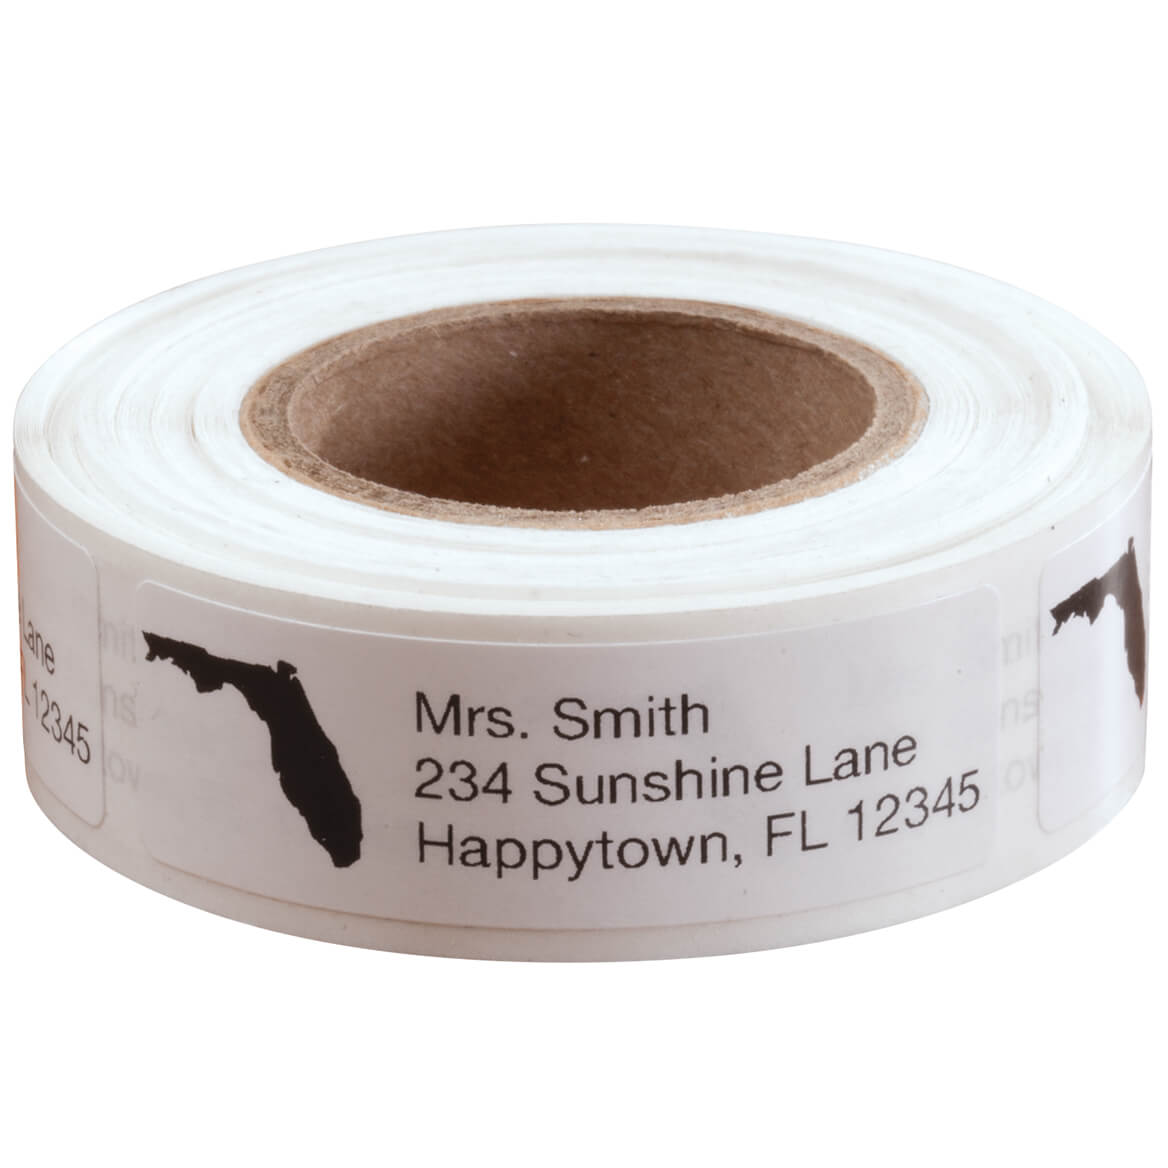 State Silhouette Personalized Address Labels - Roll of 200-352754